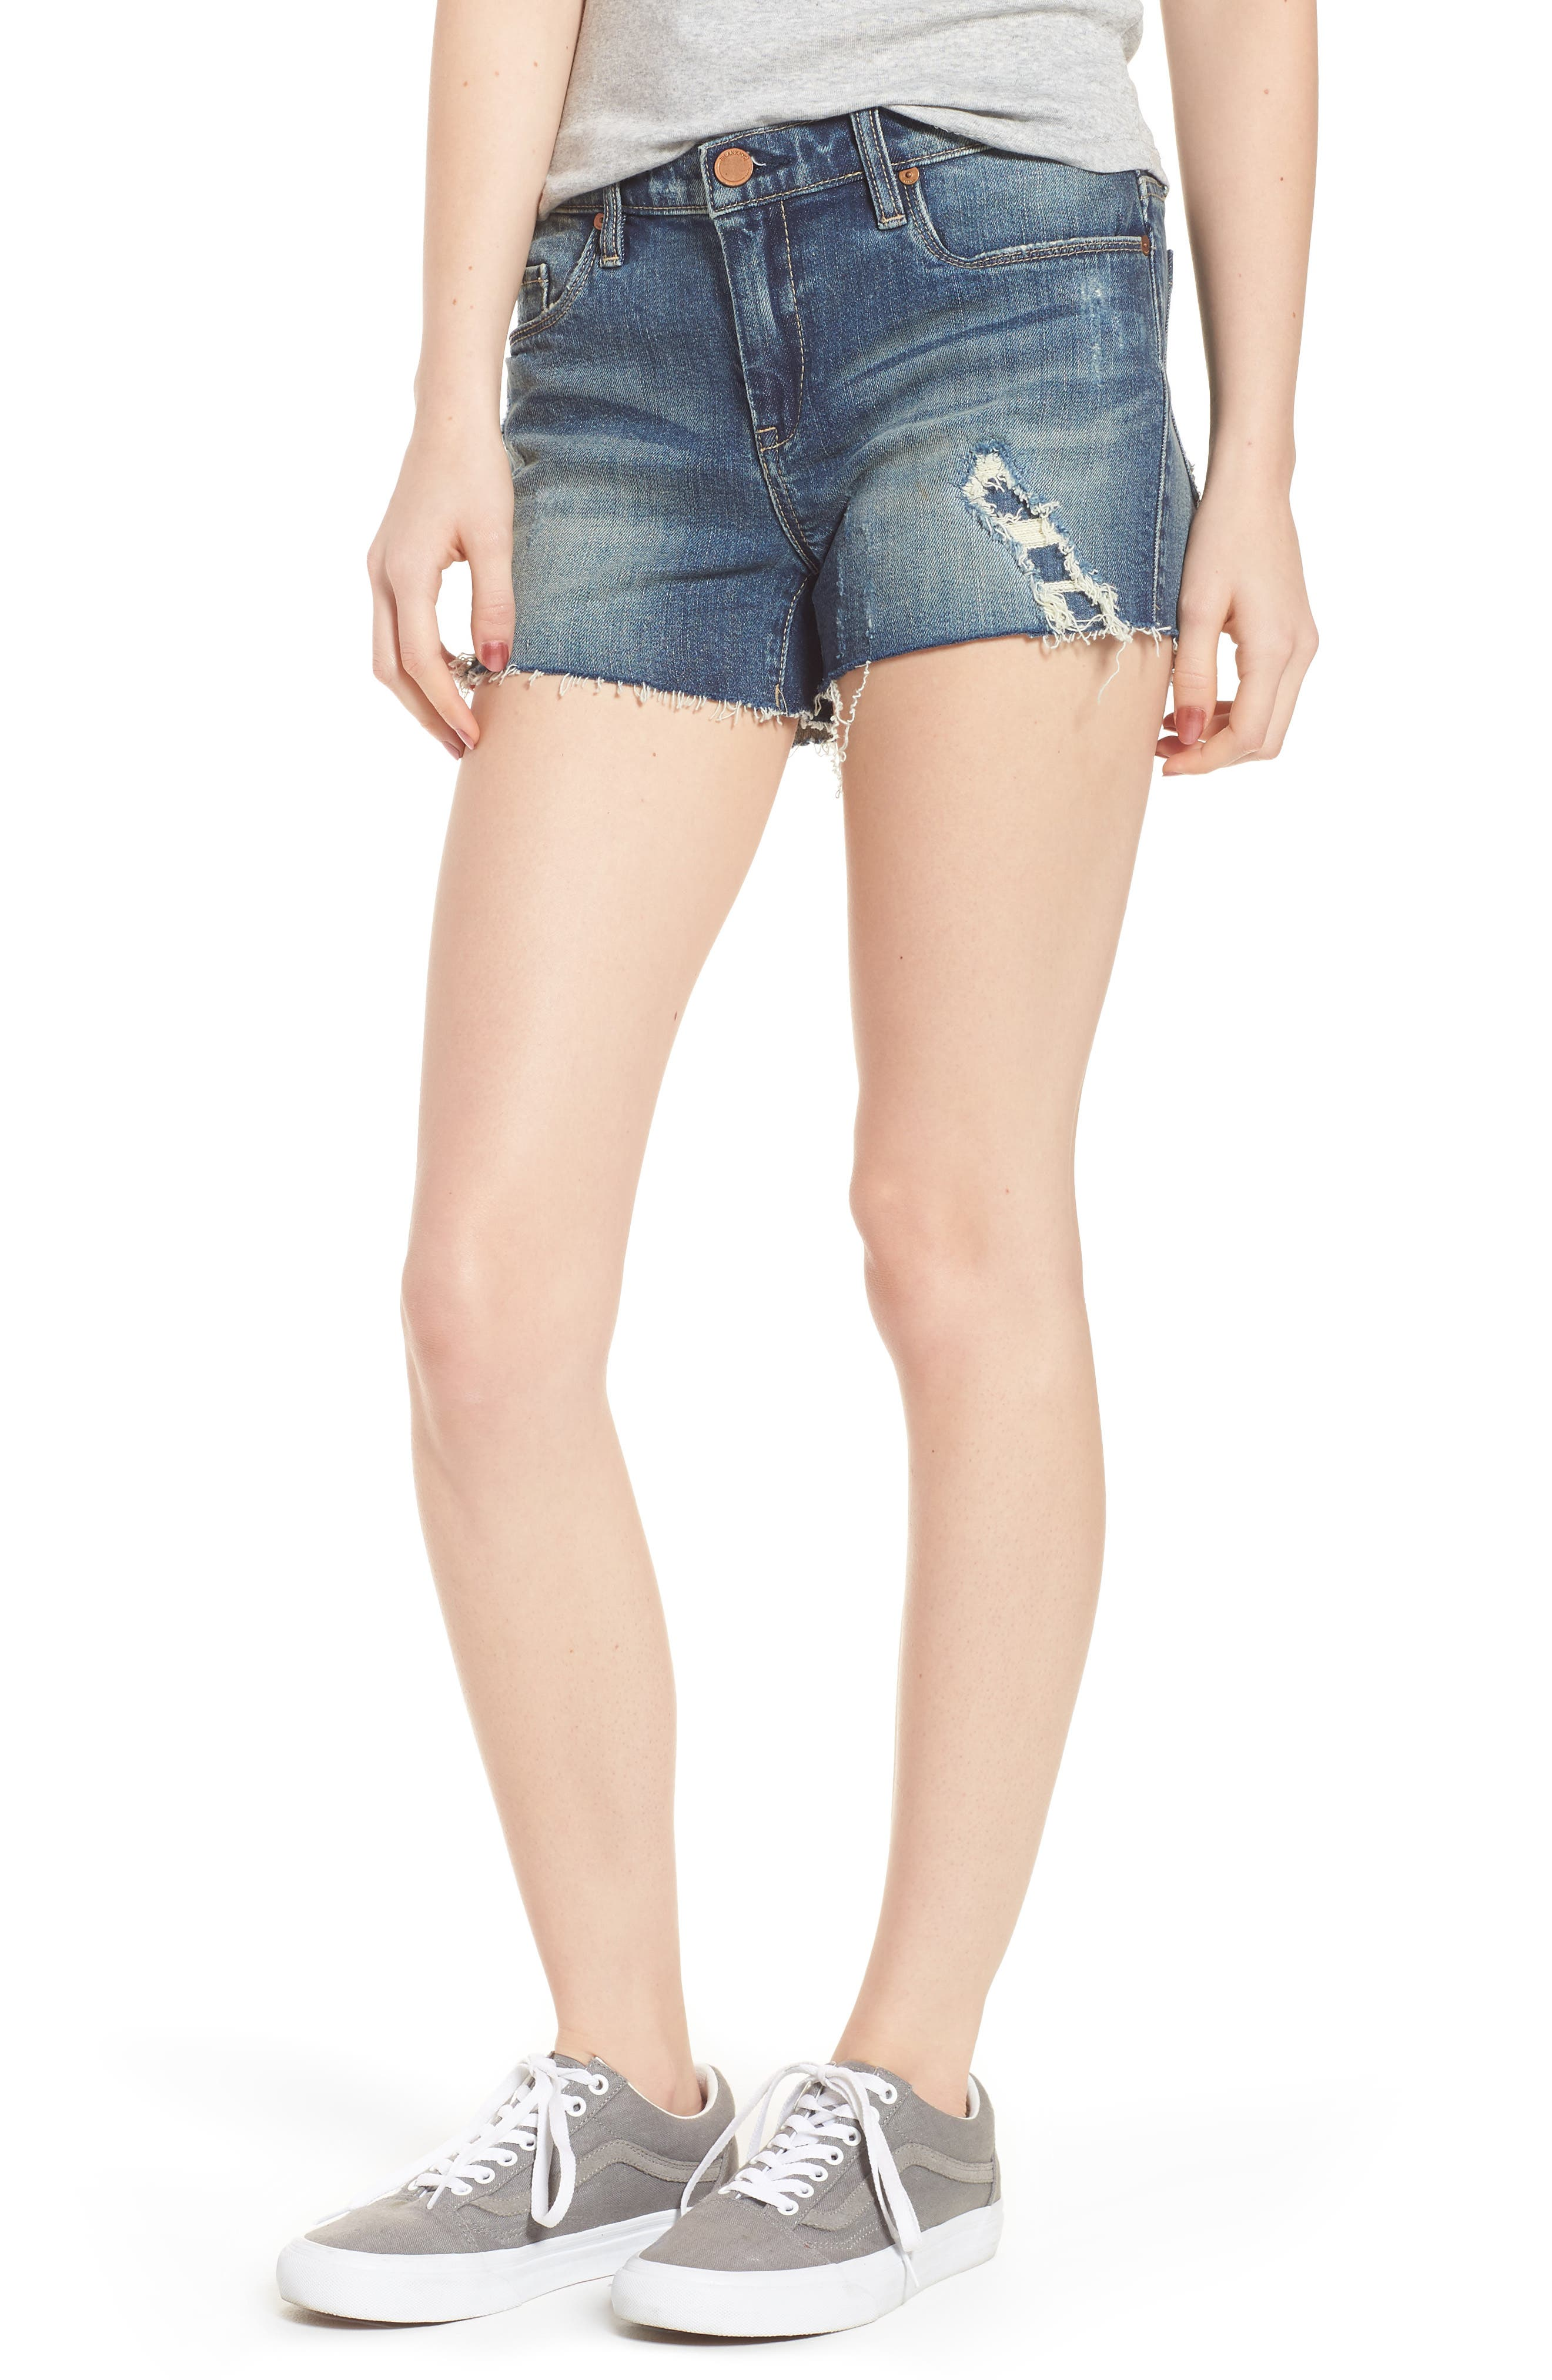 Alternate Image 1 Selected - BLANKNYC The Astor Ripped Cutoff Denim Shorts (Blame Storming)